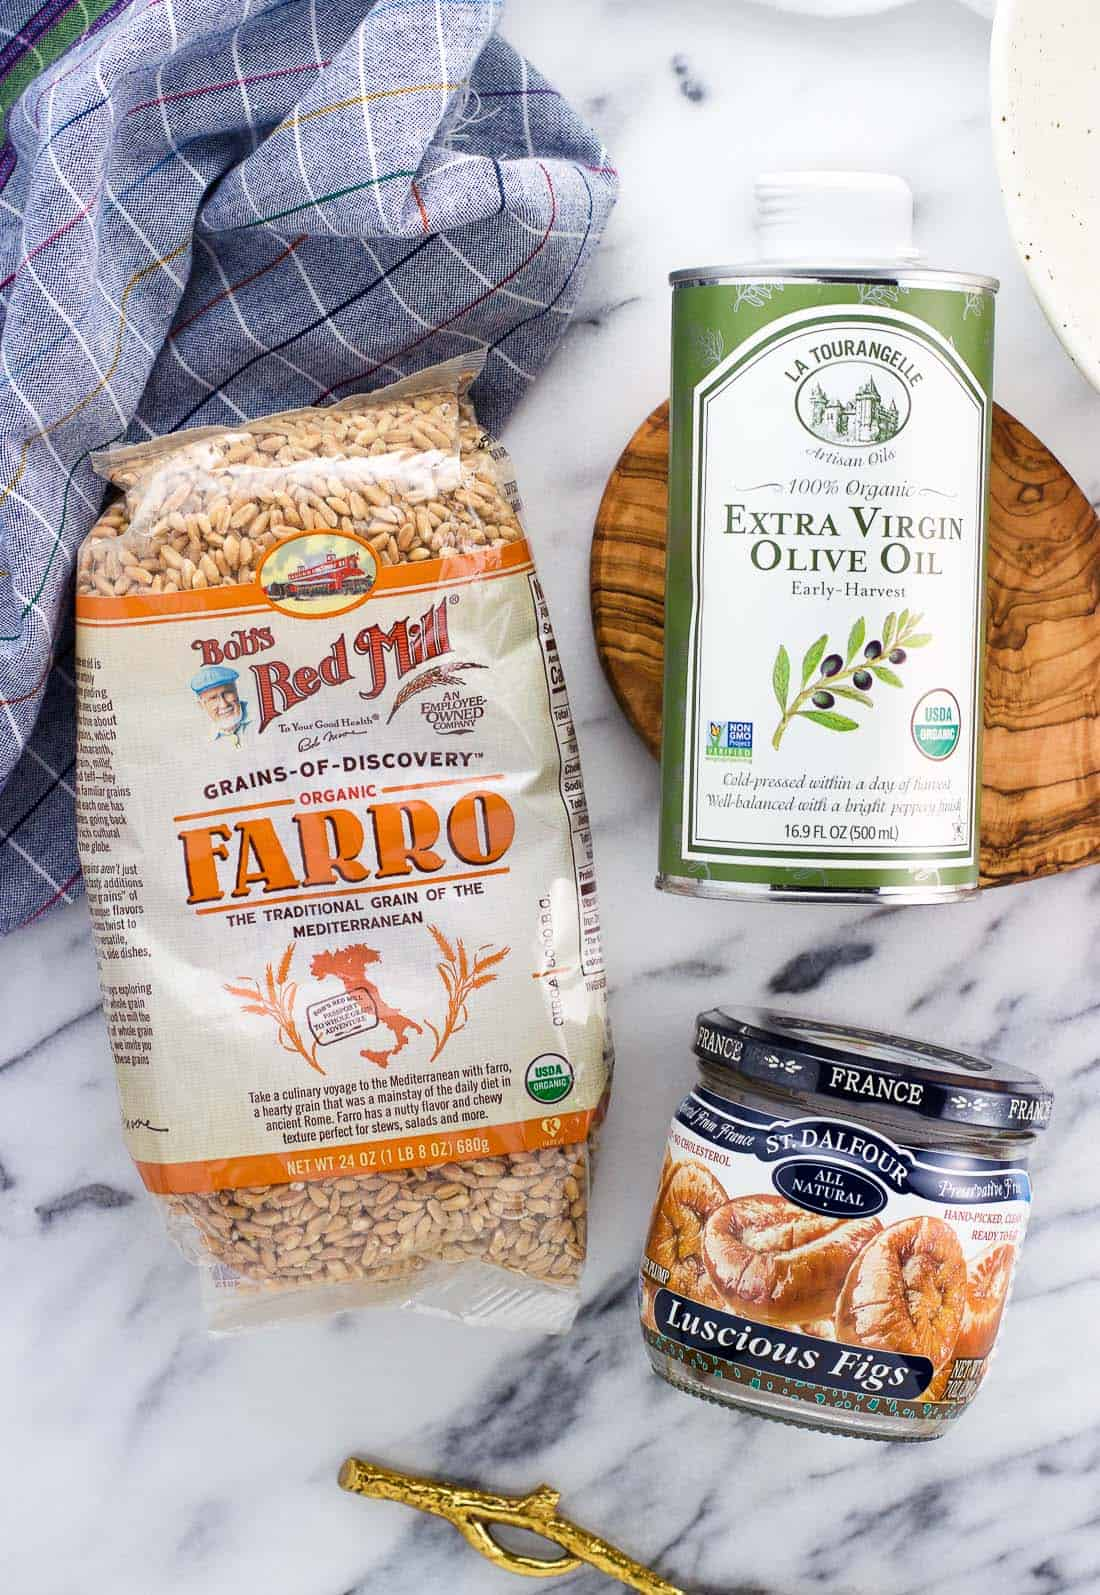 An overhead shot of farro, olive oil, and figs from iHerb